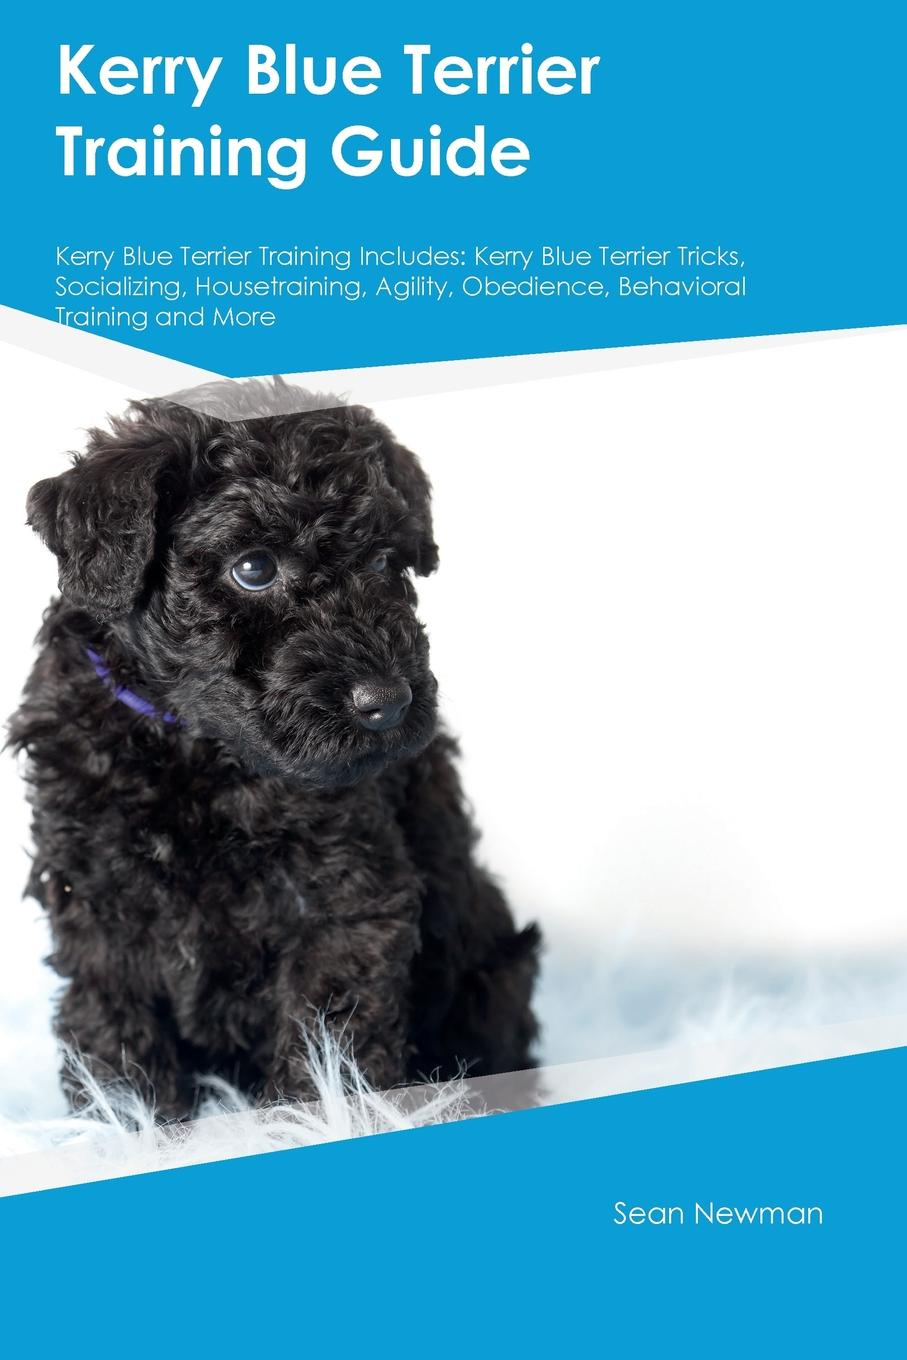 Sean Newman Kerry Blue Terrier Training Guide Includes. Tricks, Socializing, Housetraining, Agility, Obedience, Behavioral and More